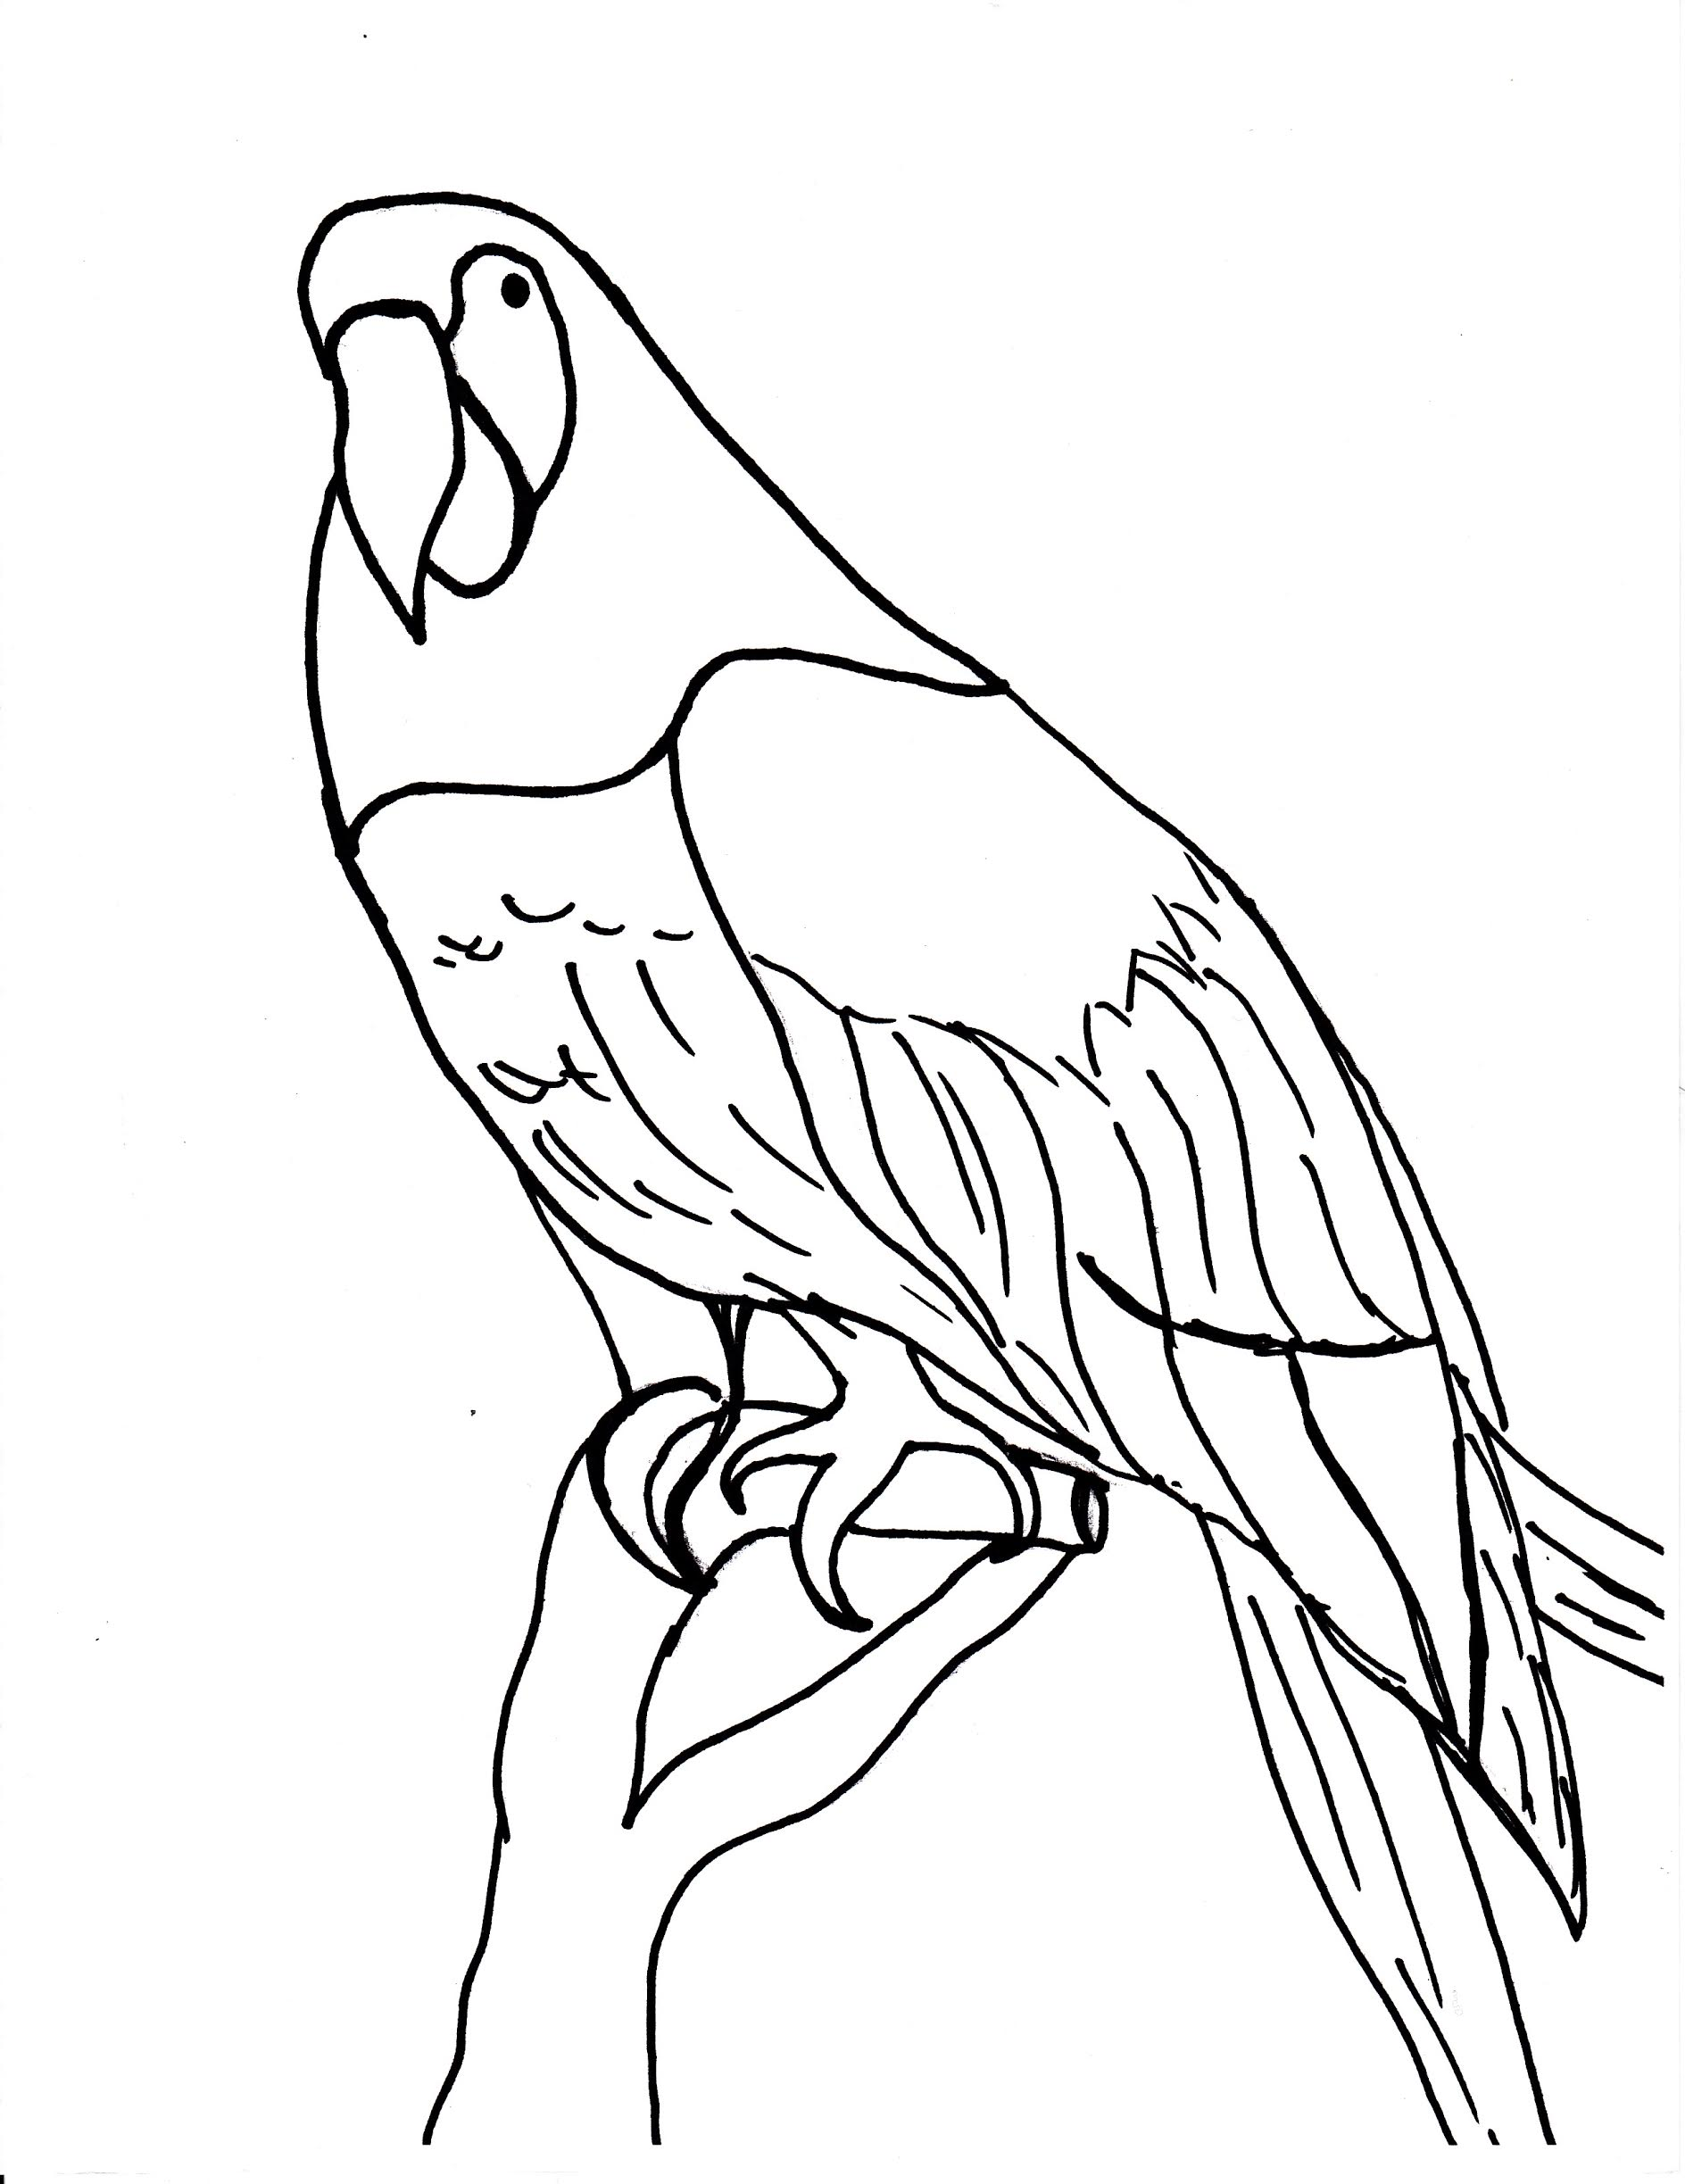 Flamingo drawing template at free for for Flamingo beak template